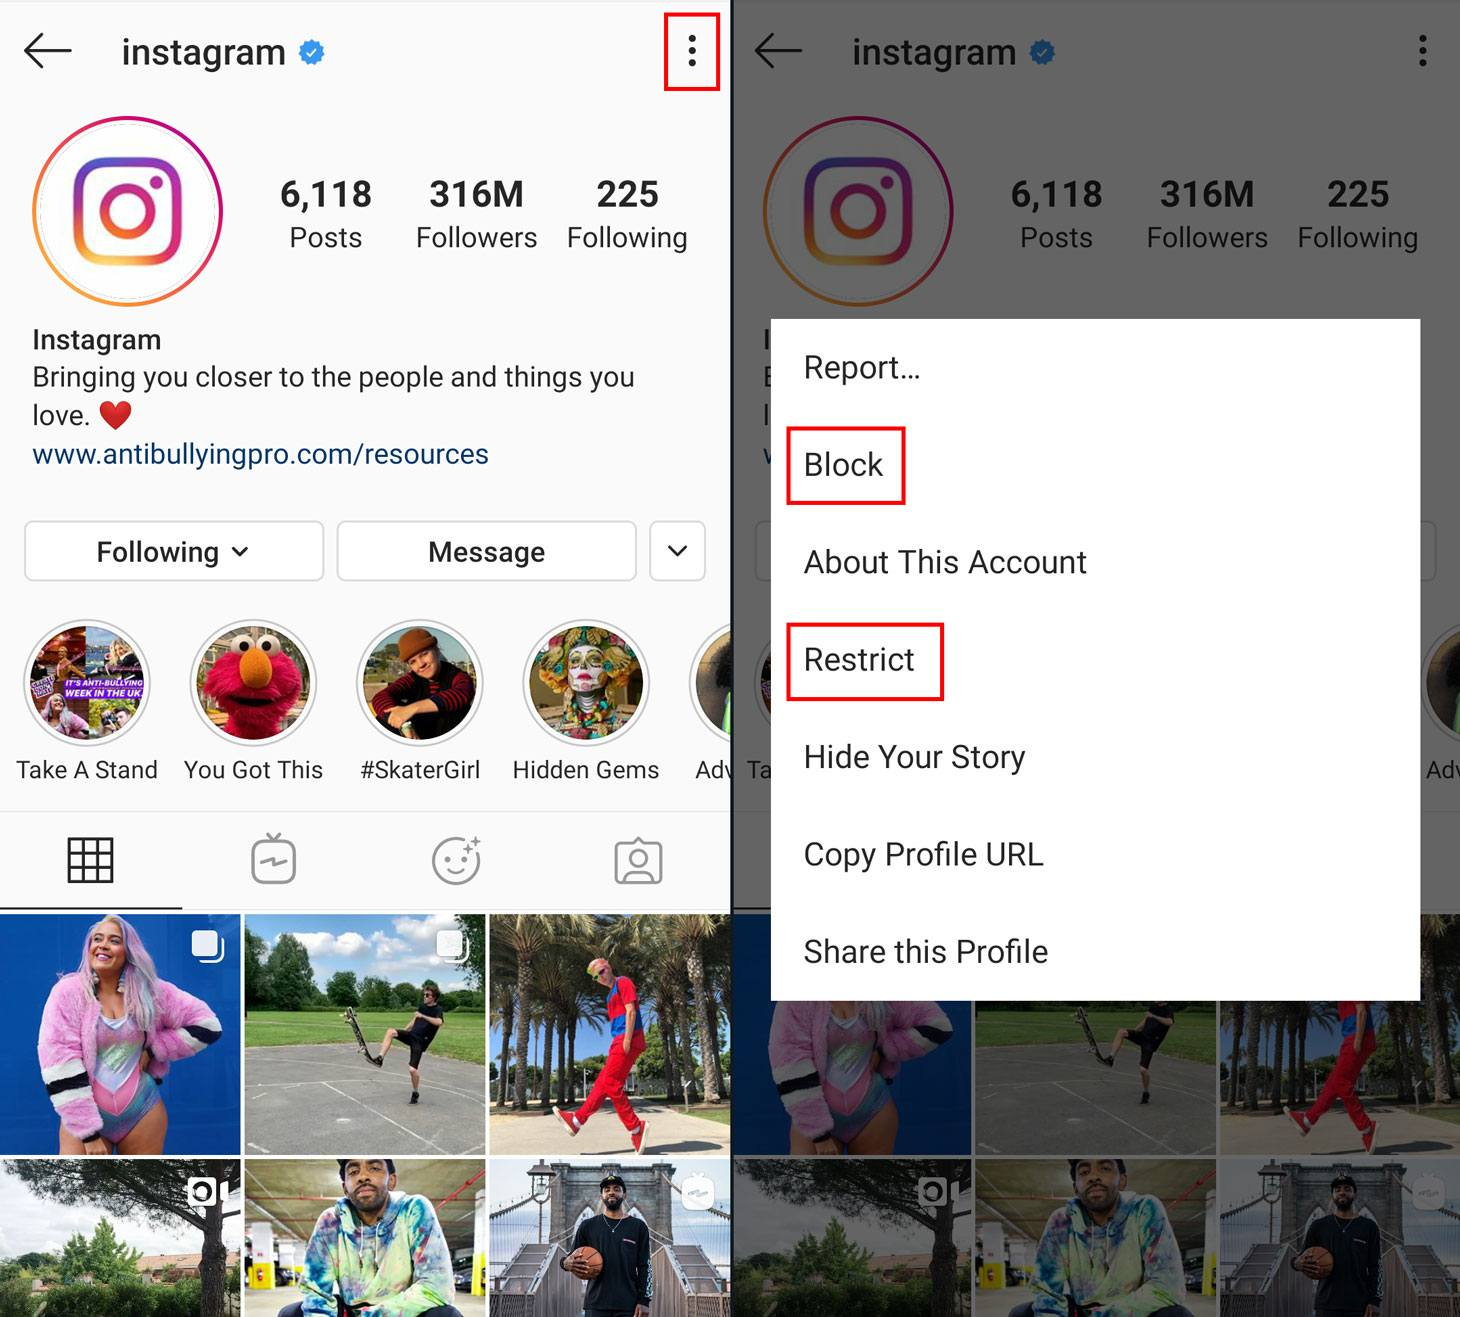 How to block or restrict access to your Instagram account